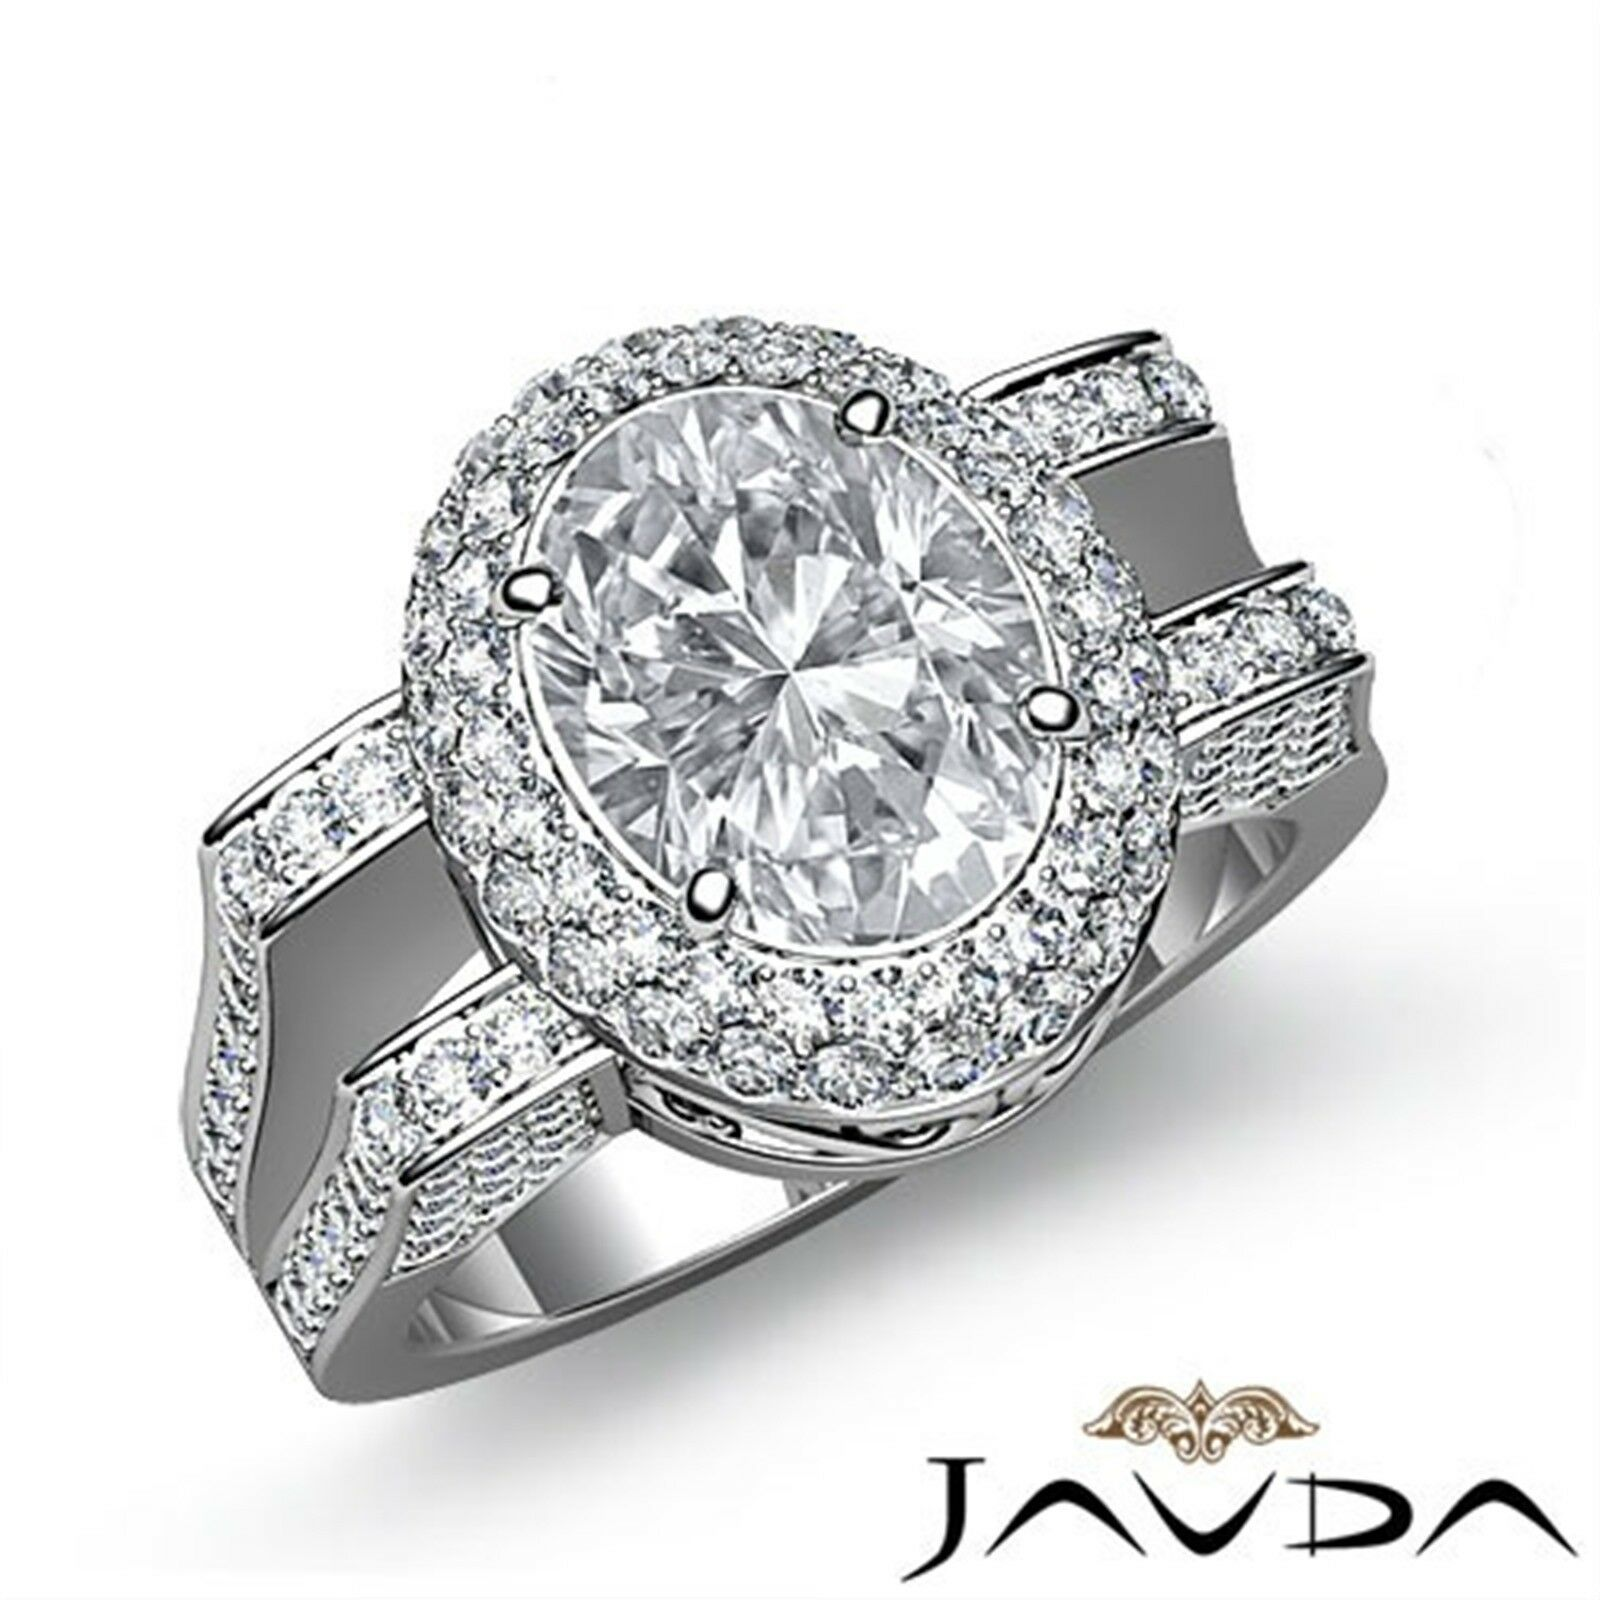 2.17ctw Gala Halo Split Shank Oval Diamond Engagement Ring GIA D-VS2 White Gold